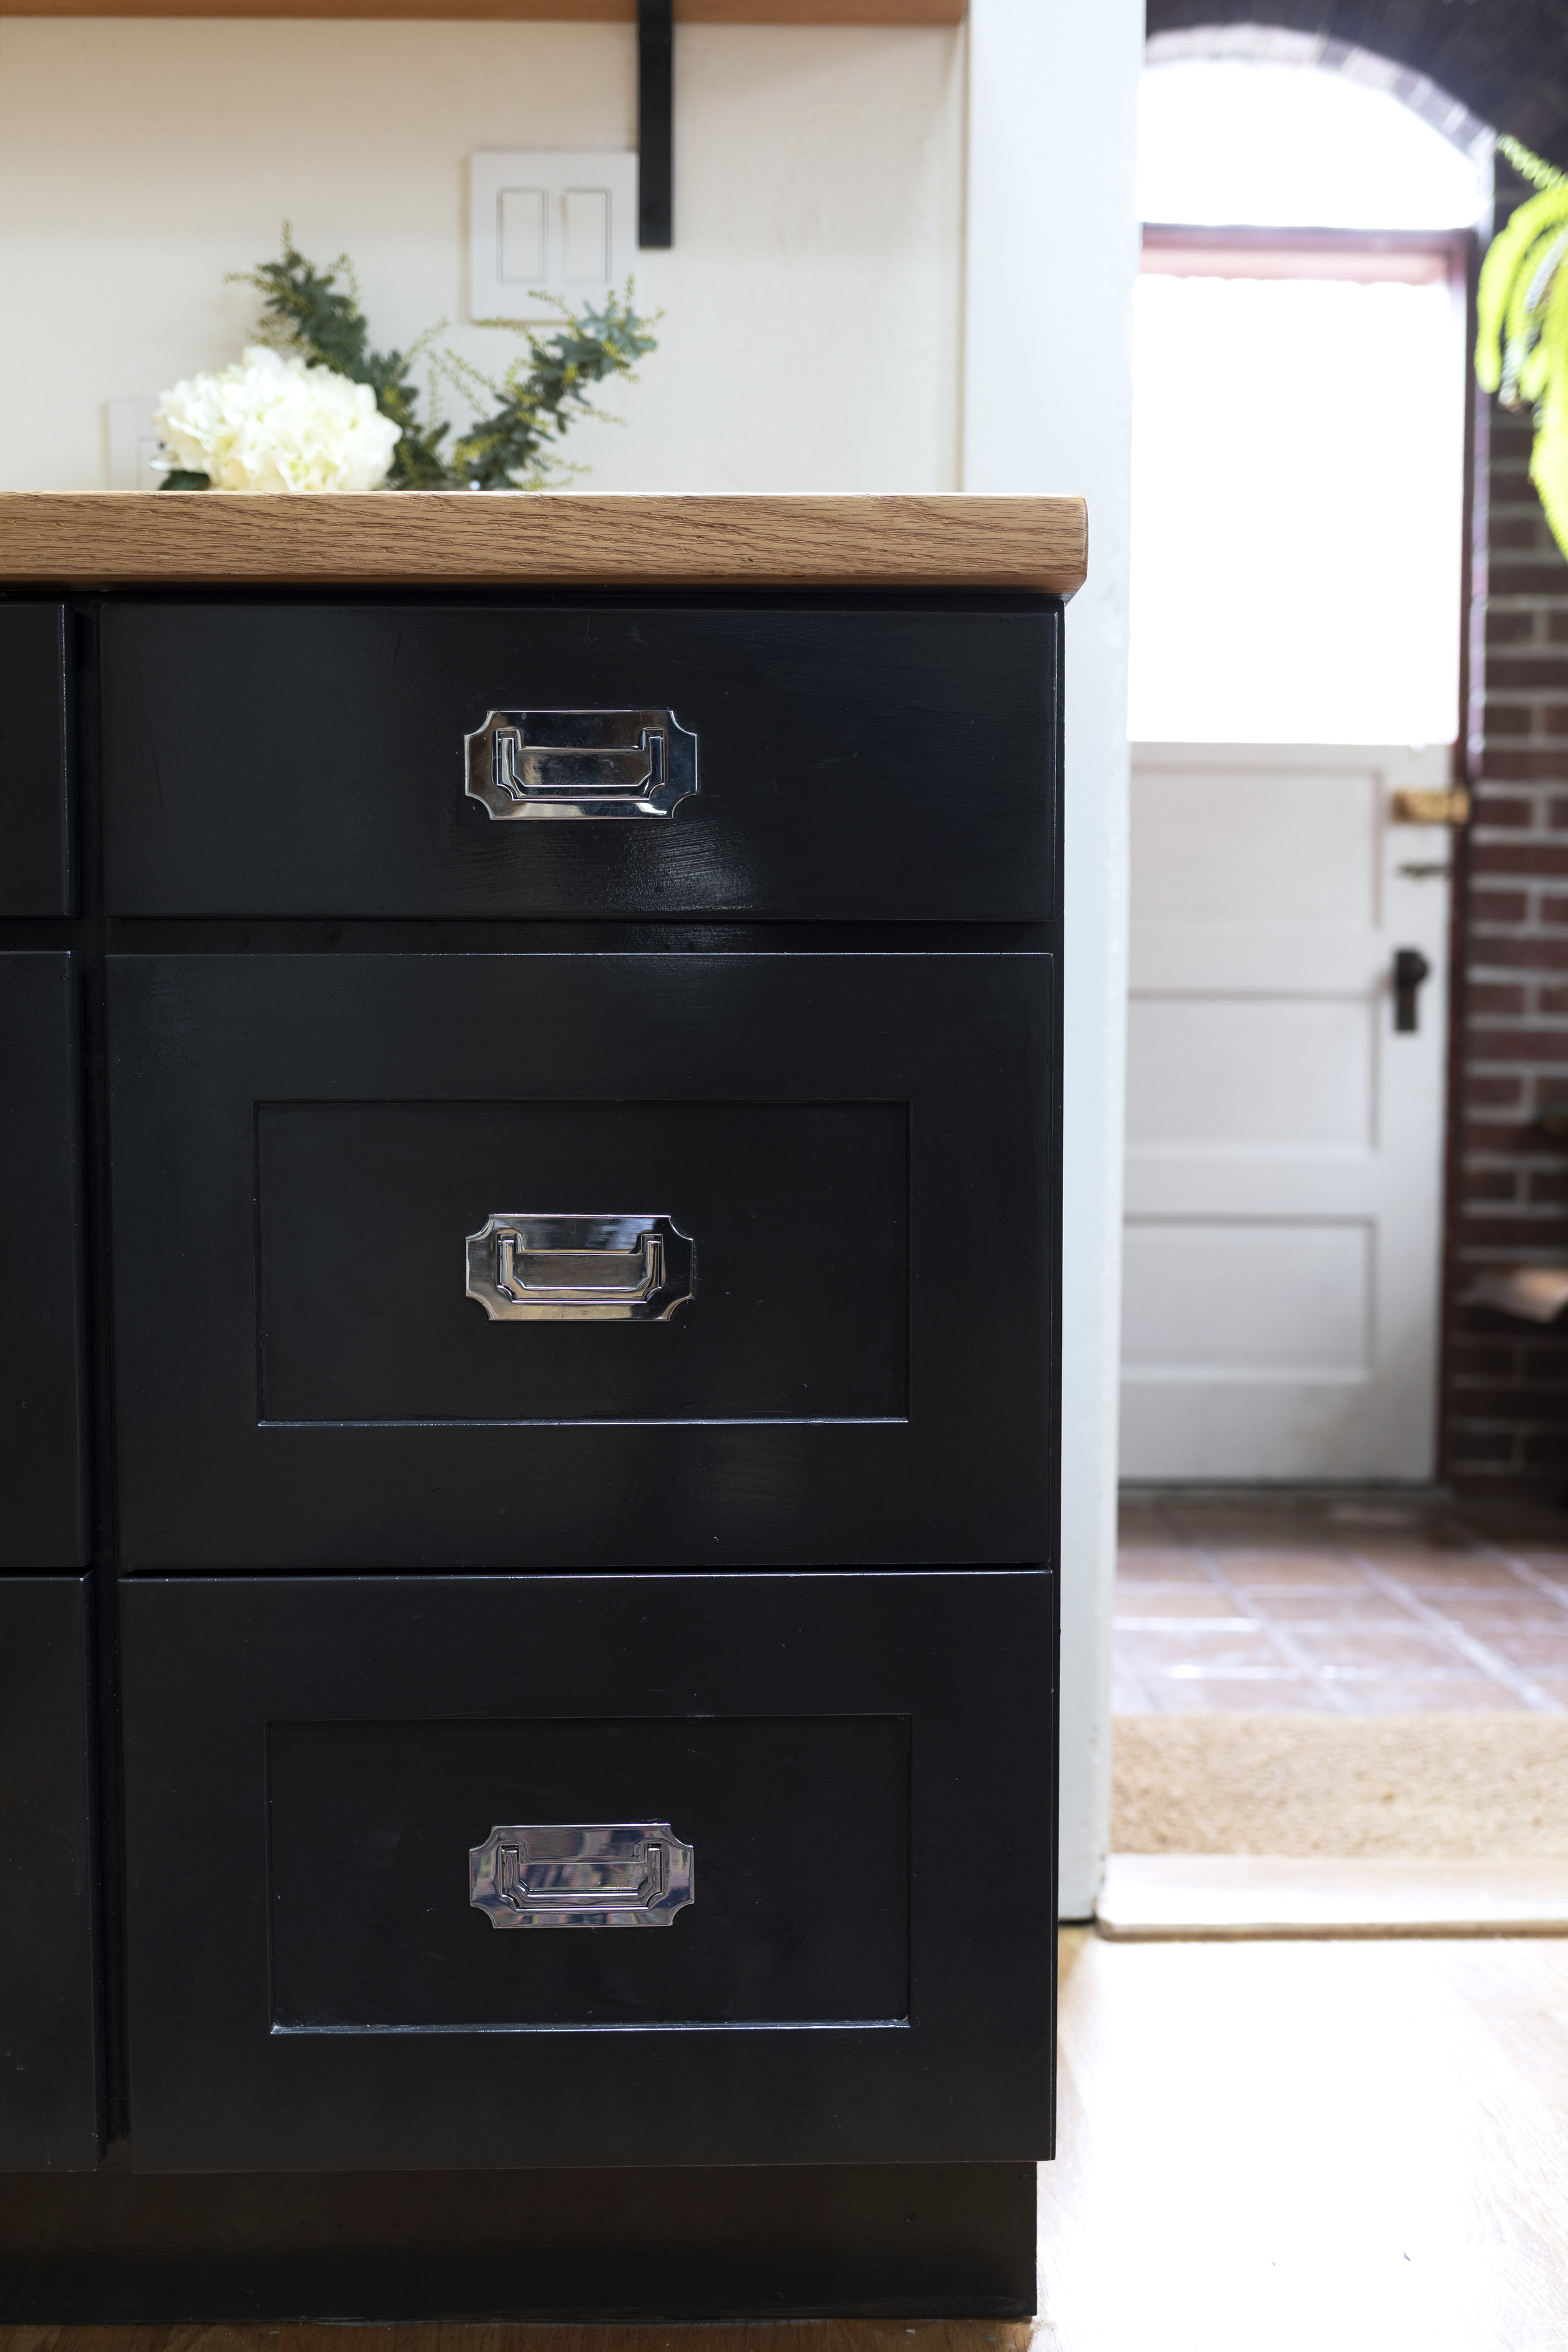 The Grit and Polish - Dexter Kitchen black Cabinets repainted.jpg